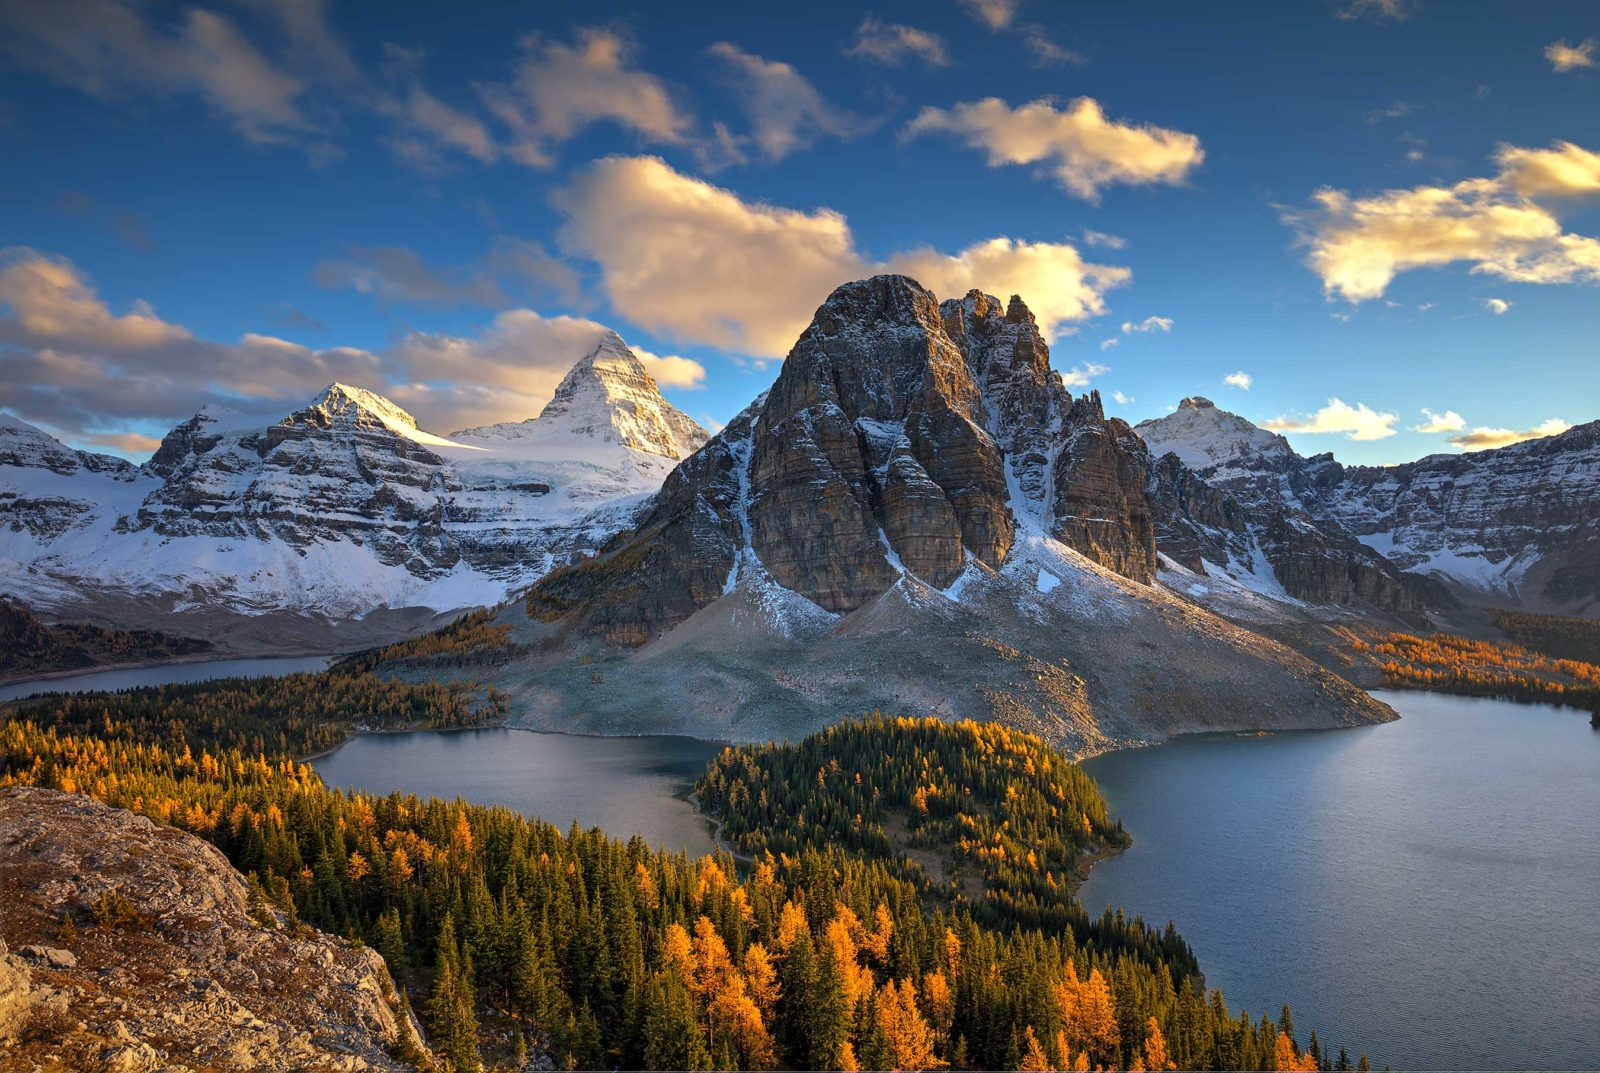 Sunset, Mount Assiniboine and Sunburst Peak